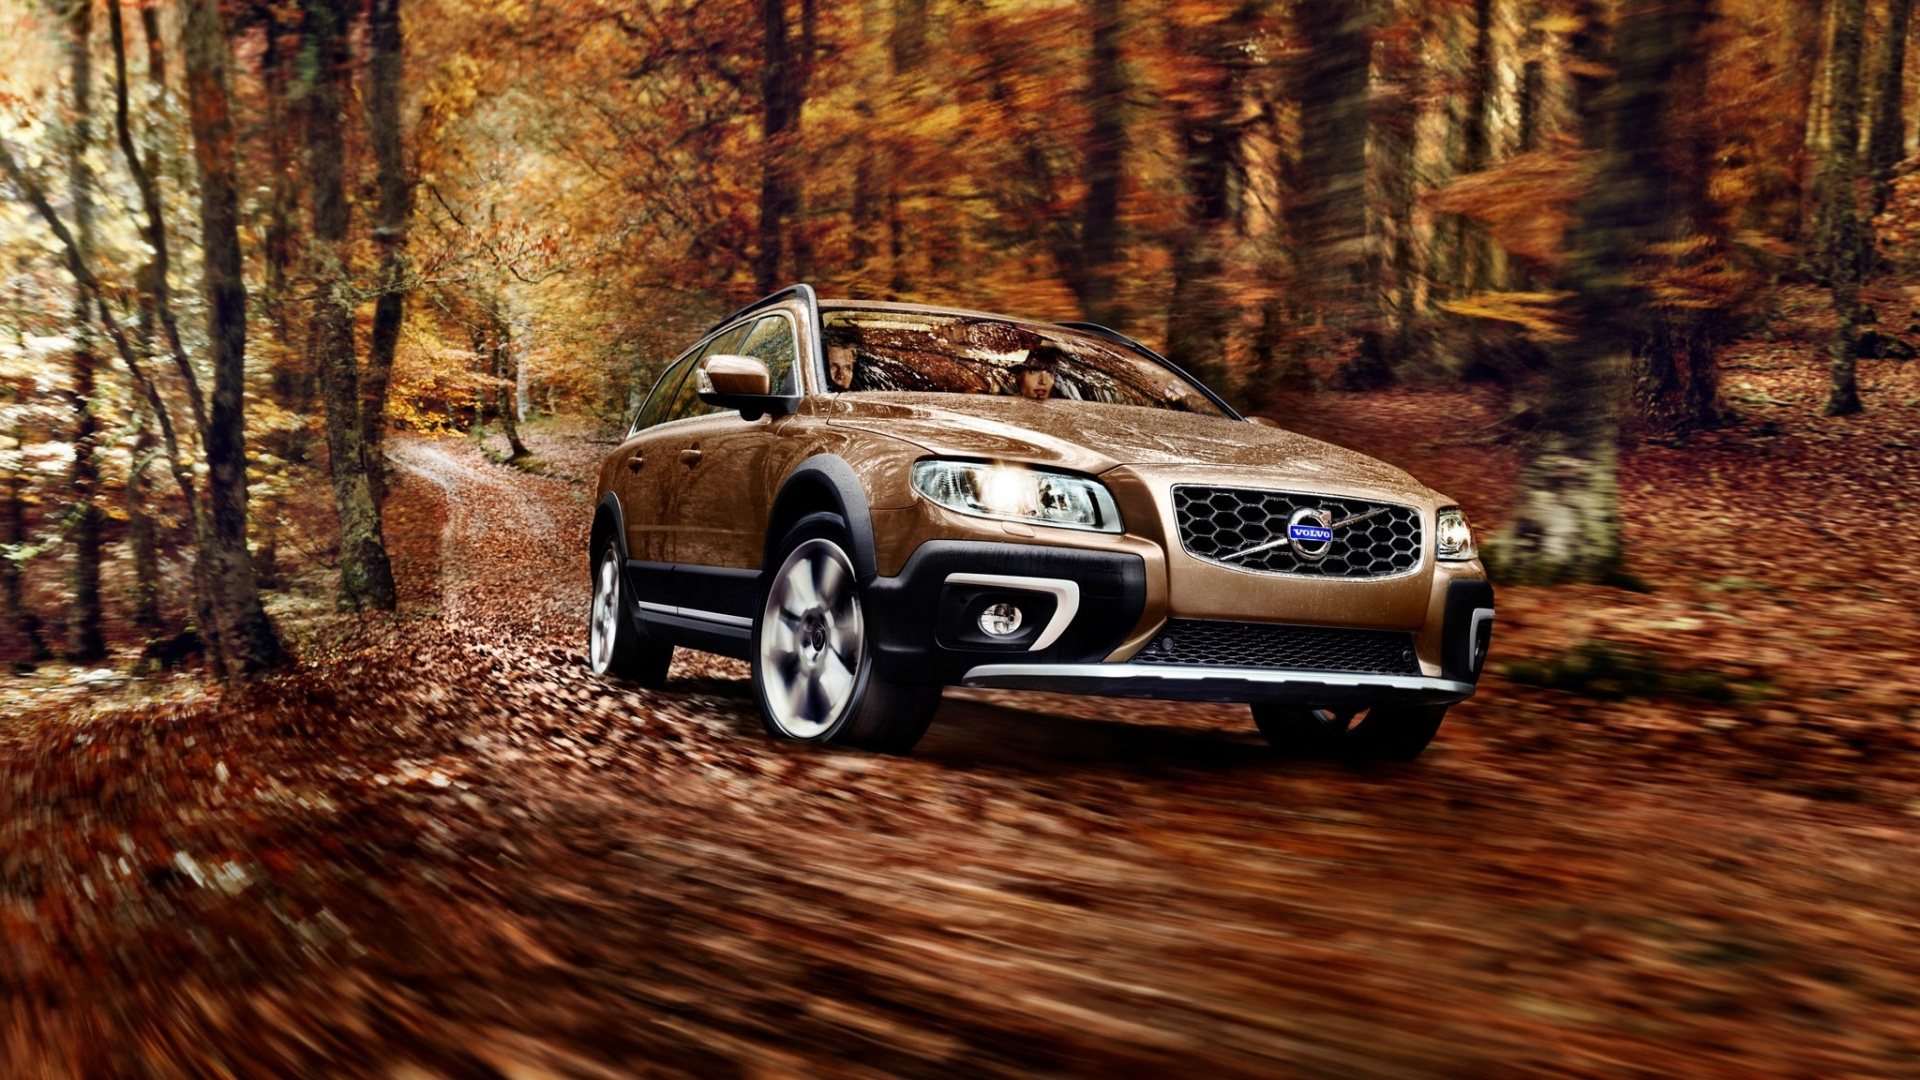 volvo xc70 2015 wallpapers 1920x1080 795931. Black Bedroom Furniture Sets. Home Design Ideas